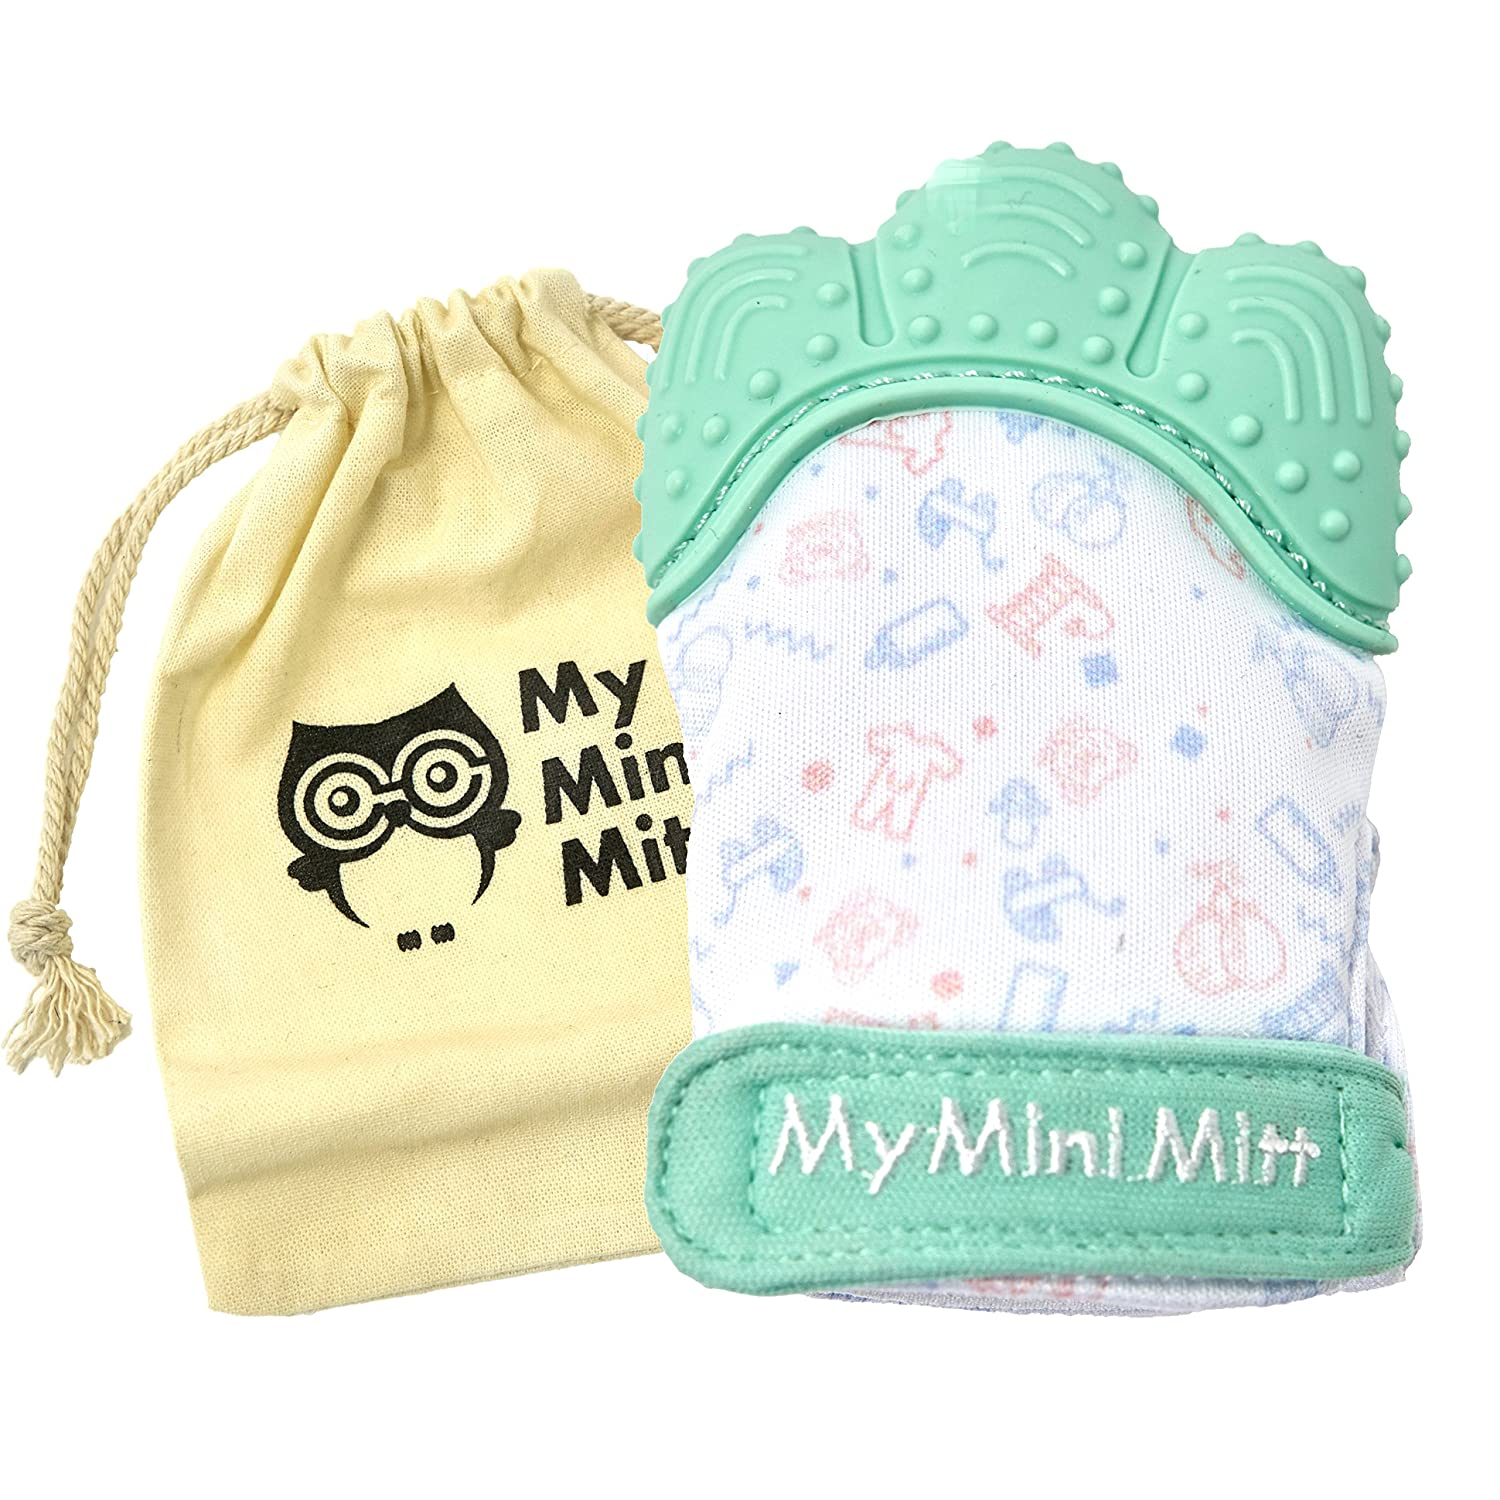 My Mini Mitt | Teething Mitten | Soothing Gum Relief Toy Glove & Teether for Babies, Infants, Toddlers, Boy & Girl | 3-12 Months | Baby Shower Gift + BONUS Storage Pouch (Pastel Blue) AB Central